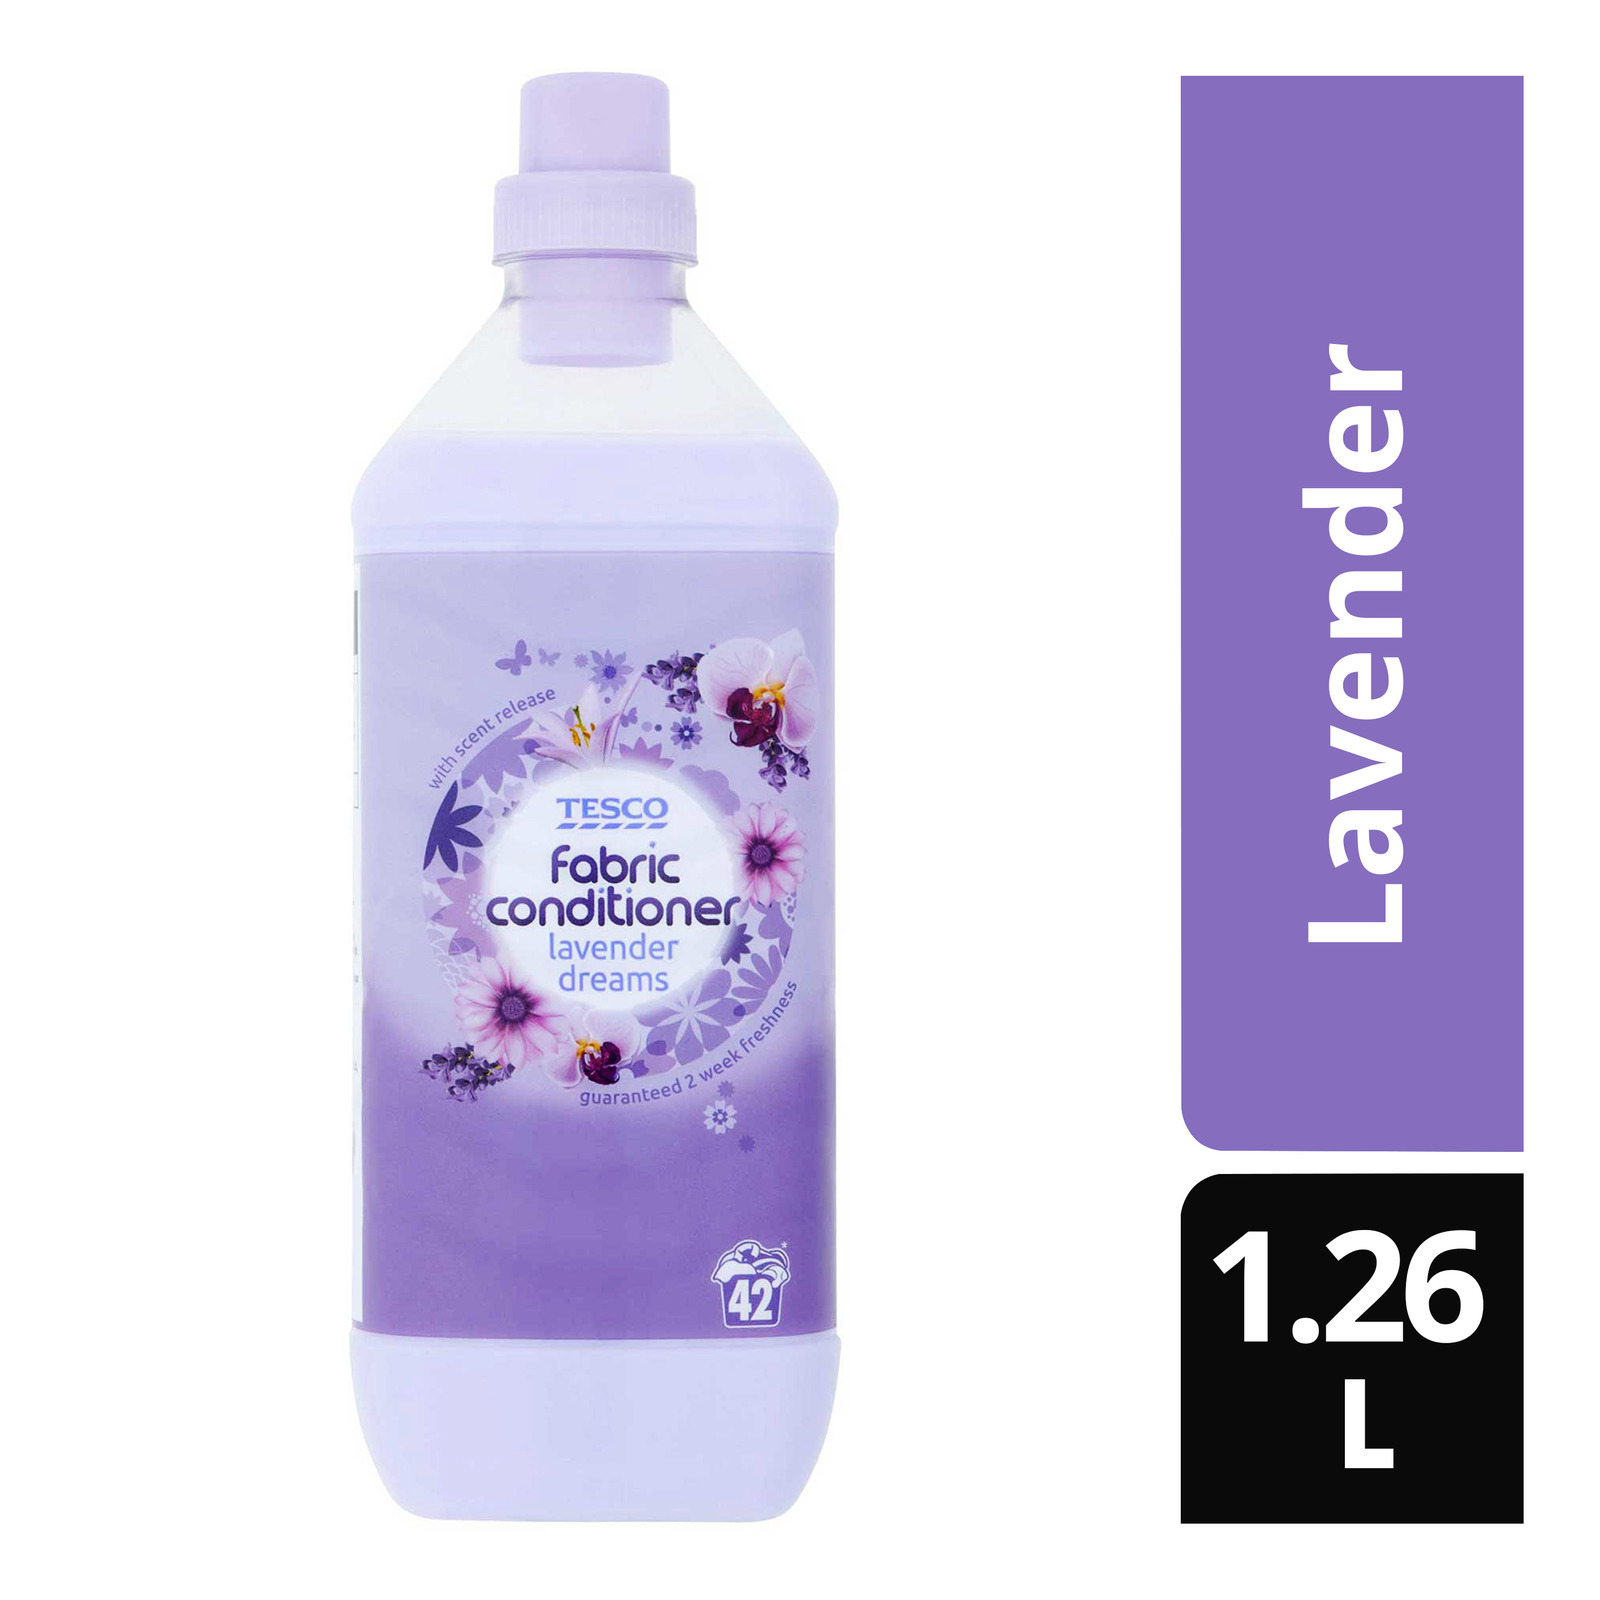 Tesco Concentrated Fabric Conditioner - Lavender Dreams